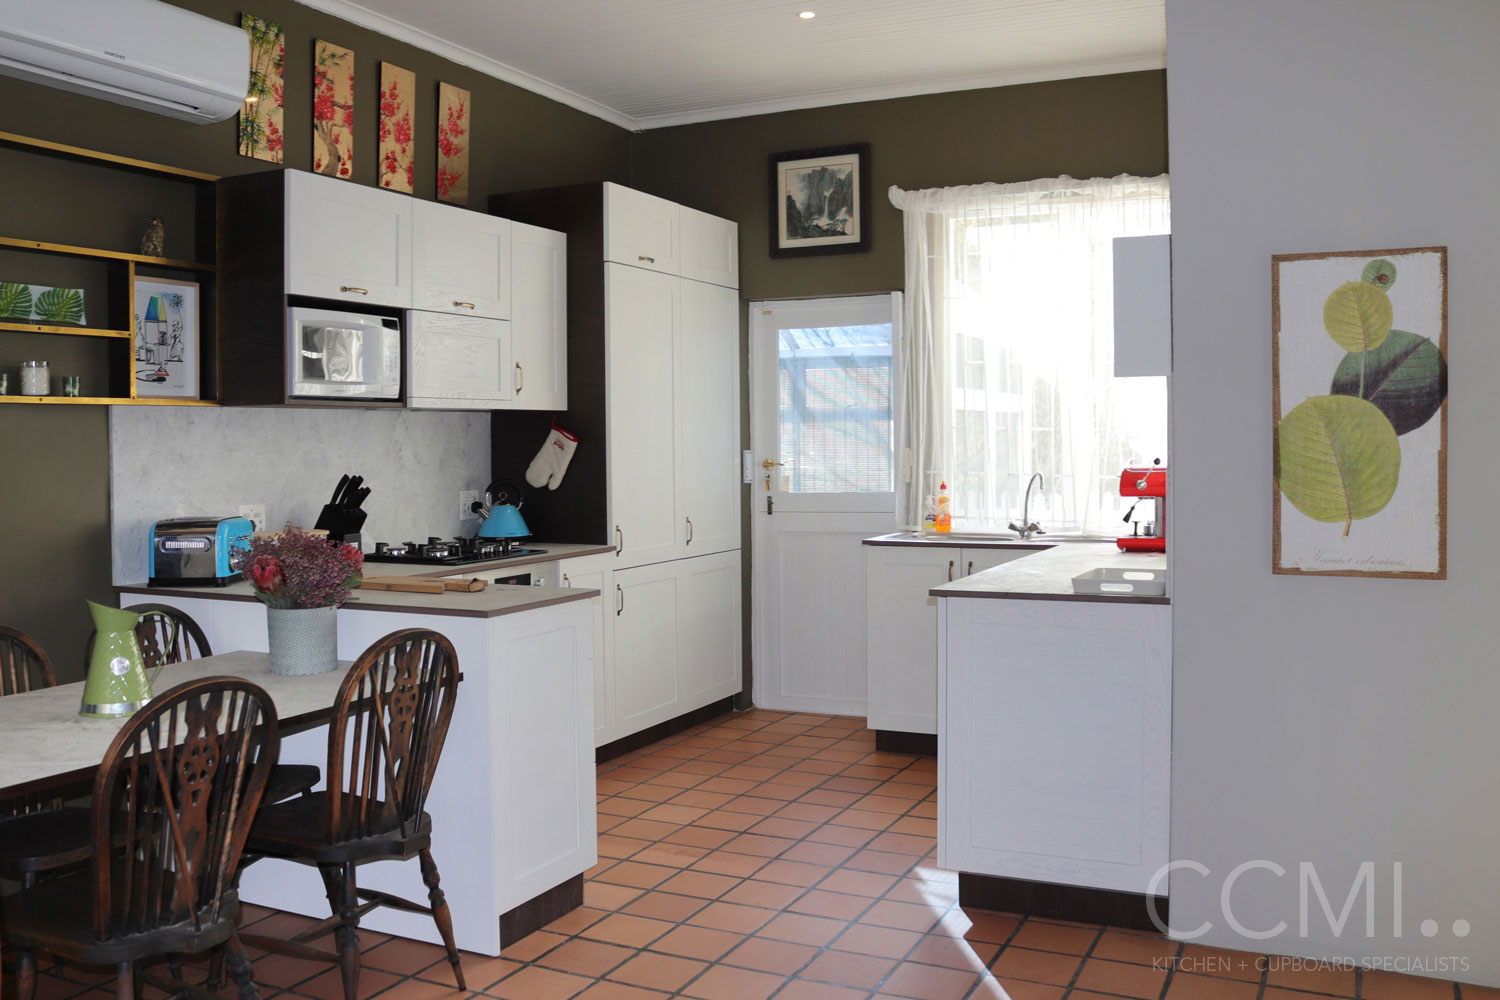 a dual L-shaped kitchen layout allows for ease of flow